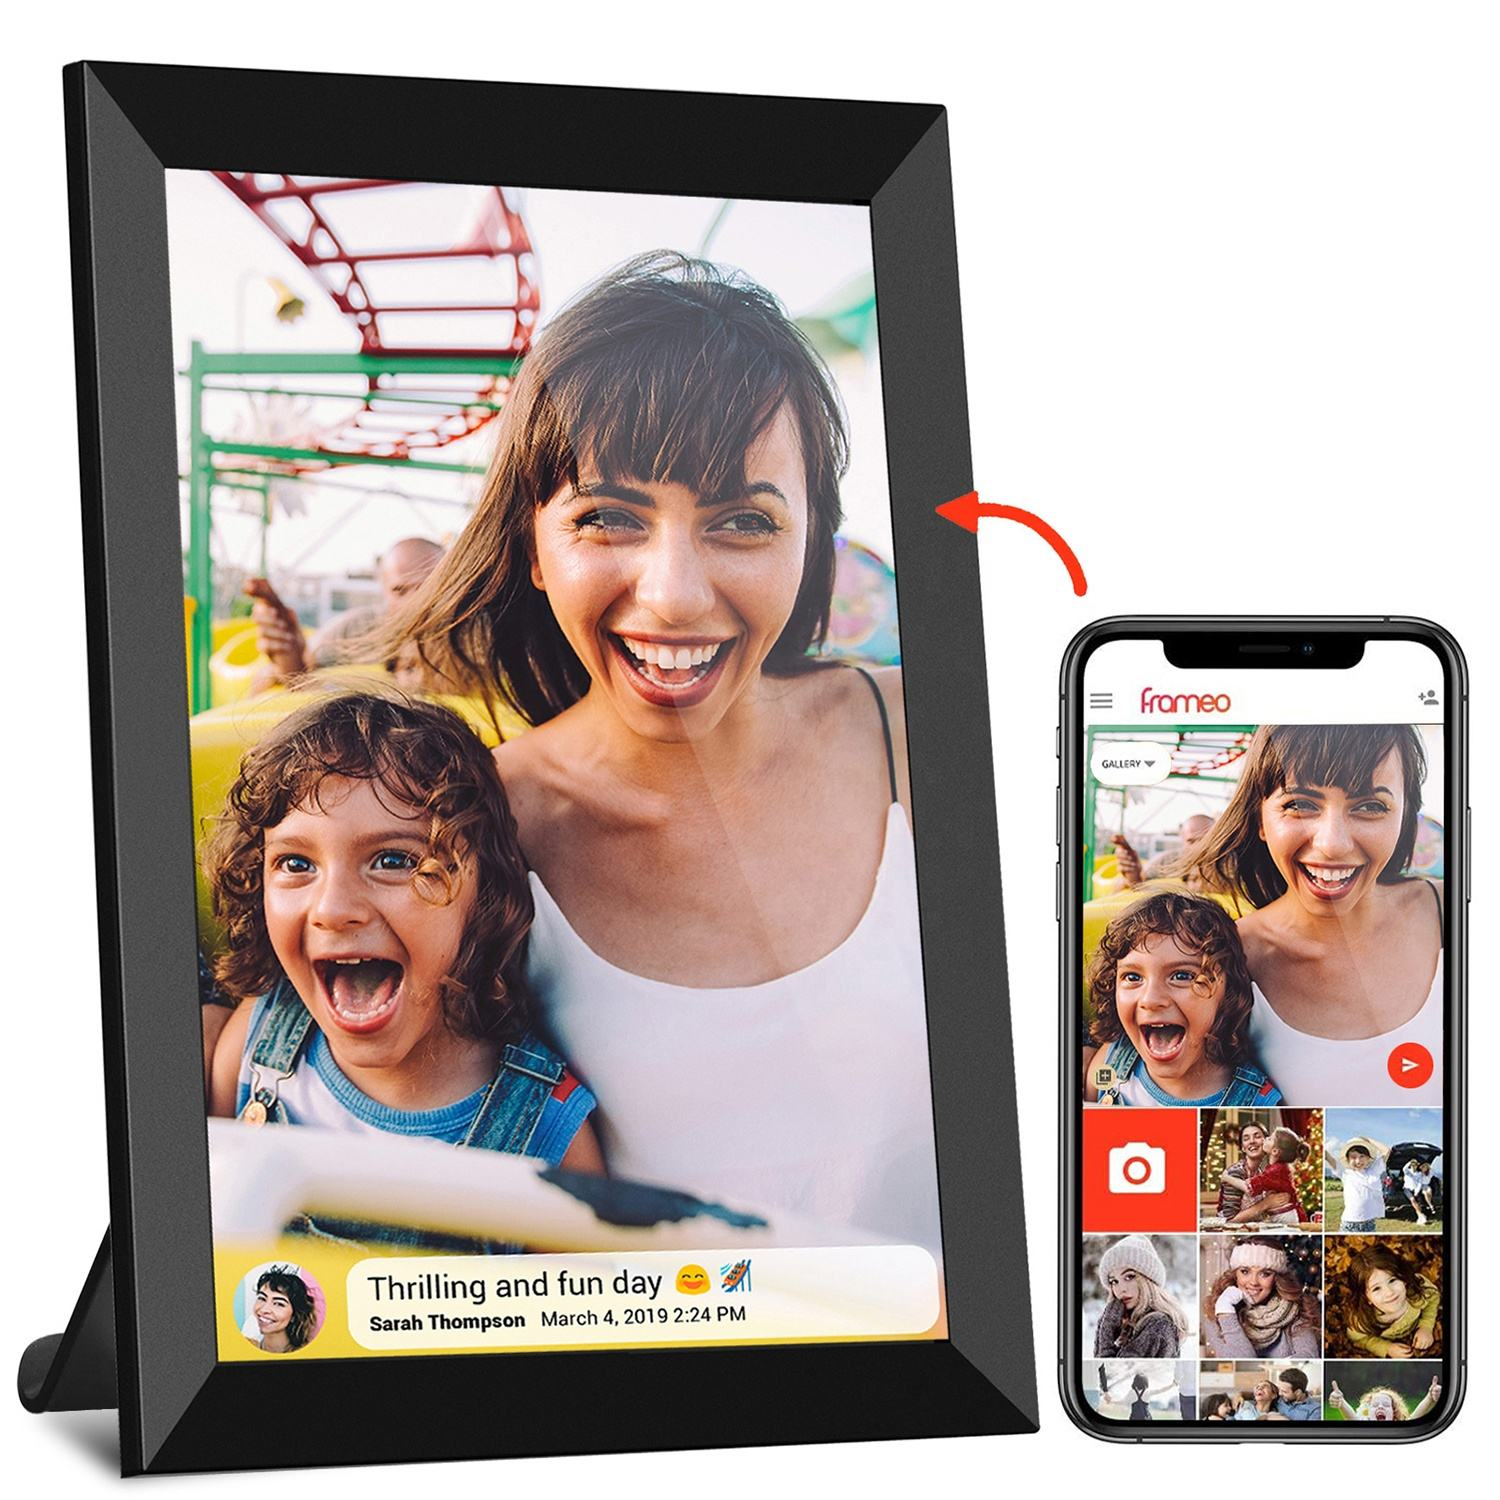 Stock up for Black Friday Sharing photos&short video with family friends via Frameo APP digital wifi picture photo frames